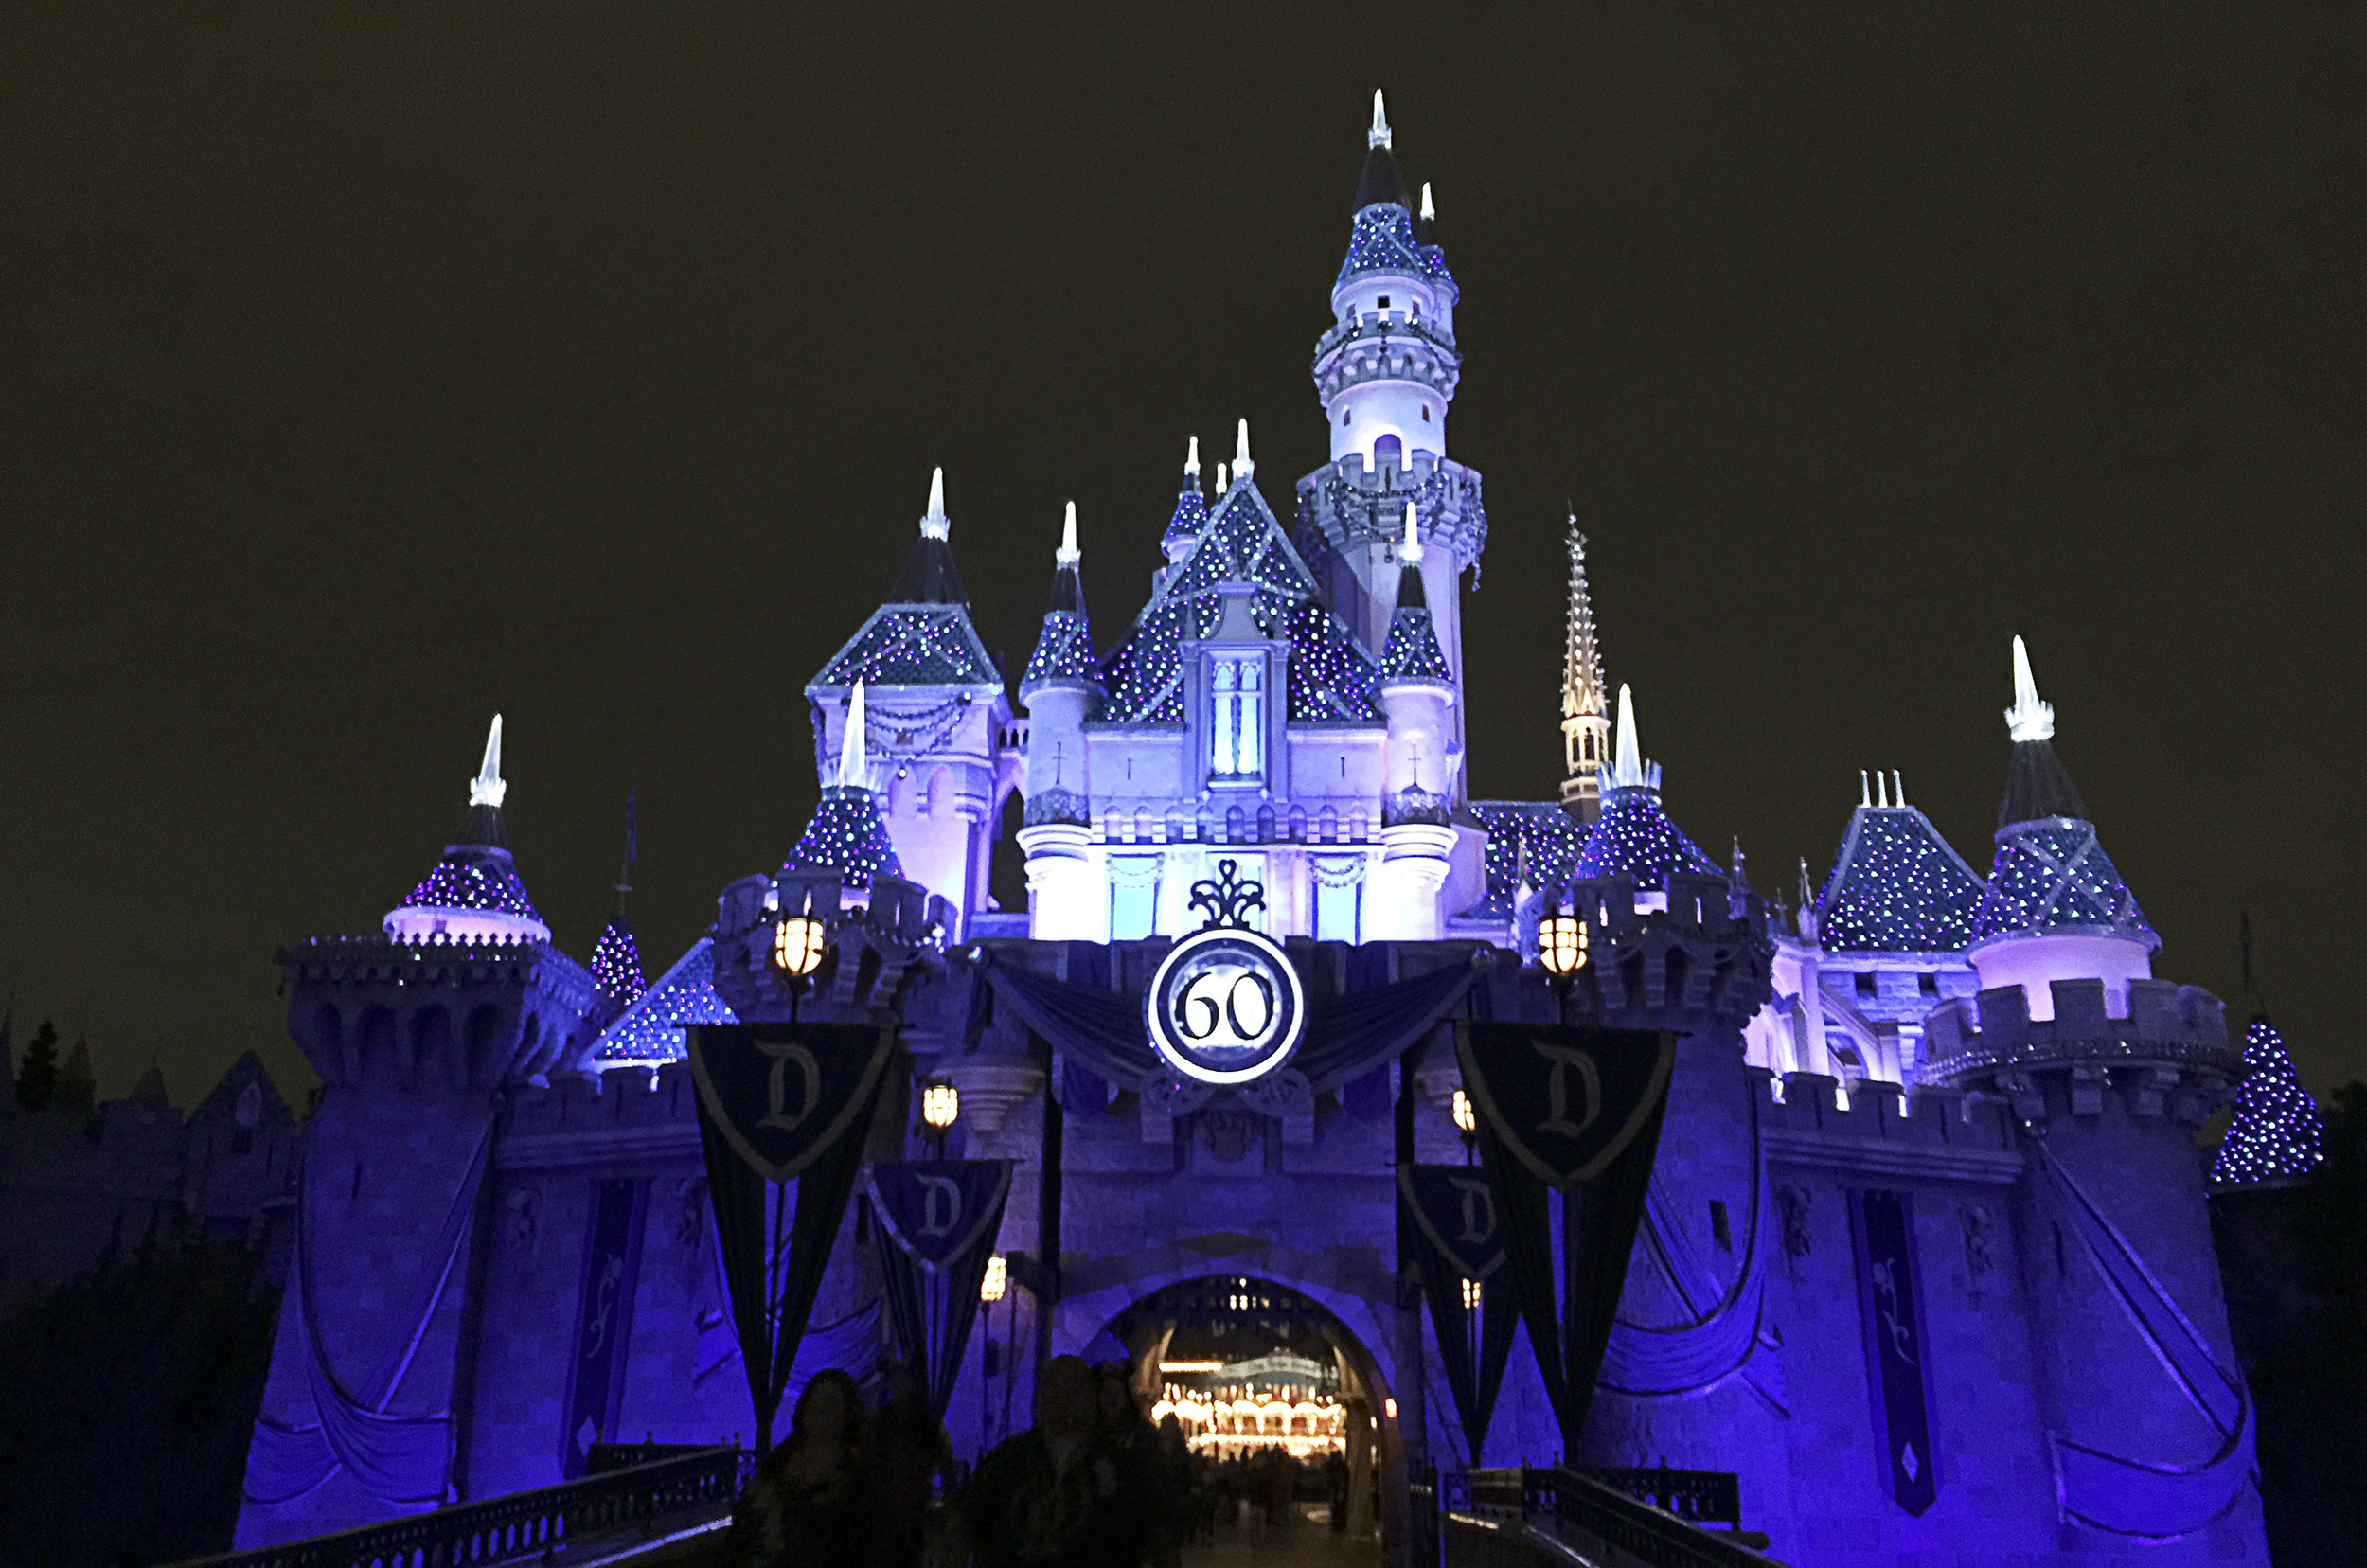 The Sleeping Beauty castle was decked out in diamonds.